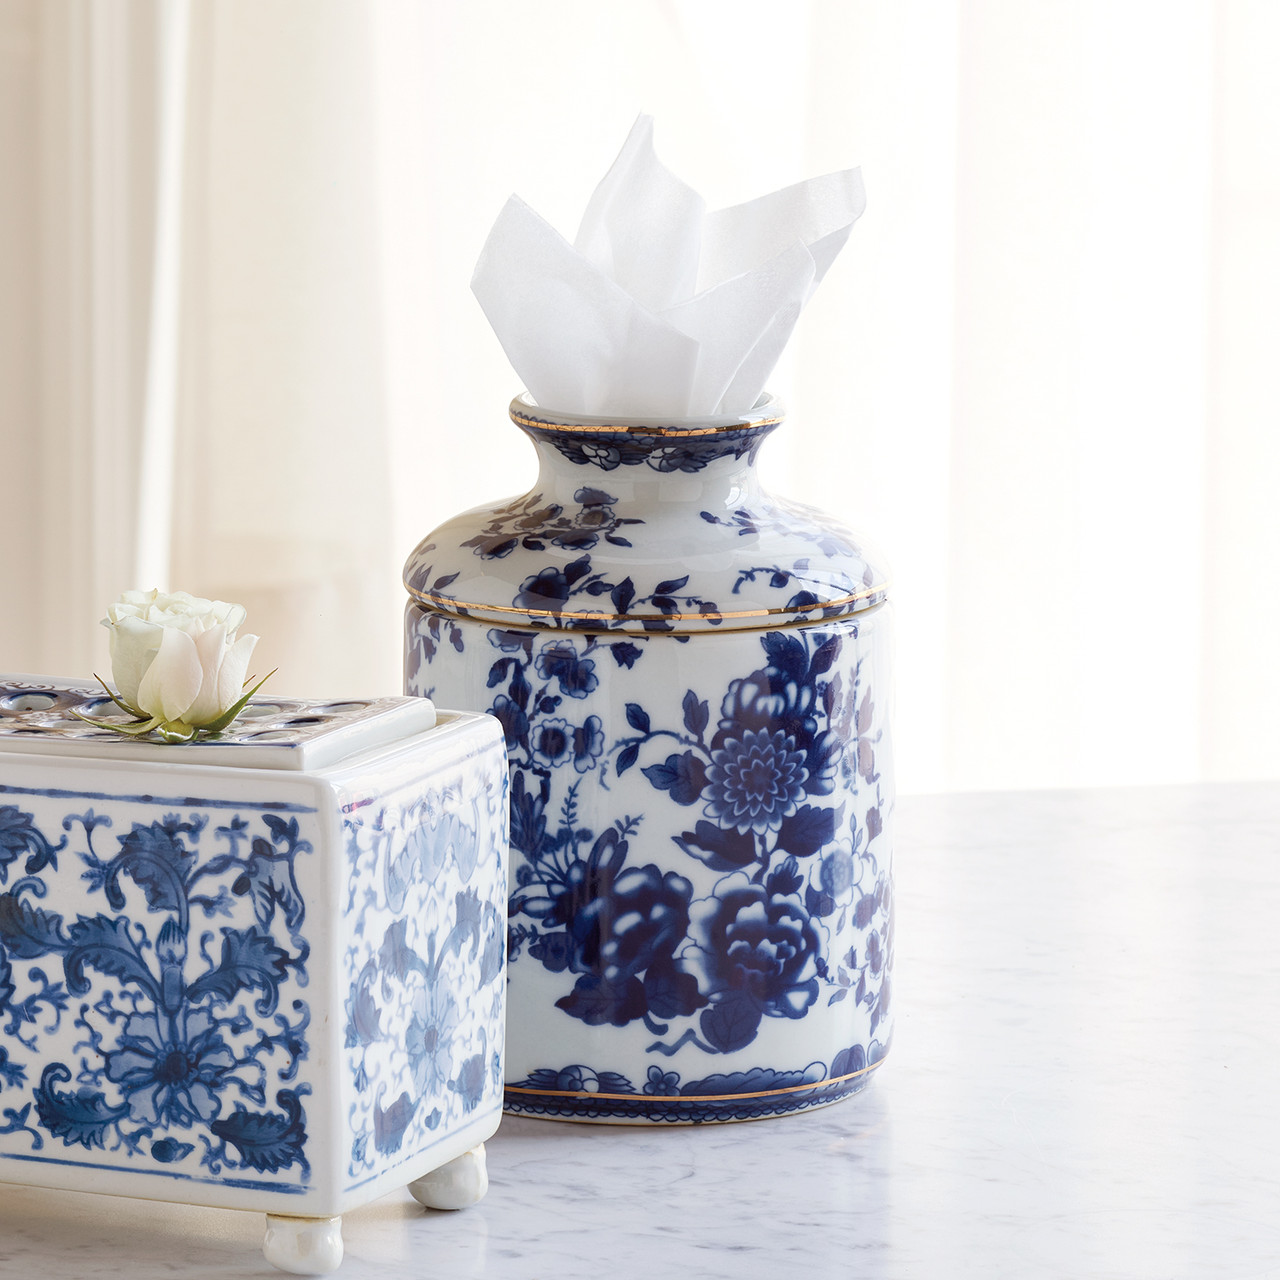 Tissue holder shell fabric cotton case blue and white cotton shell design